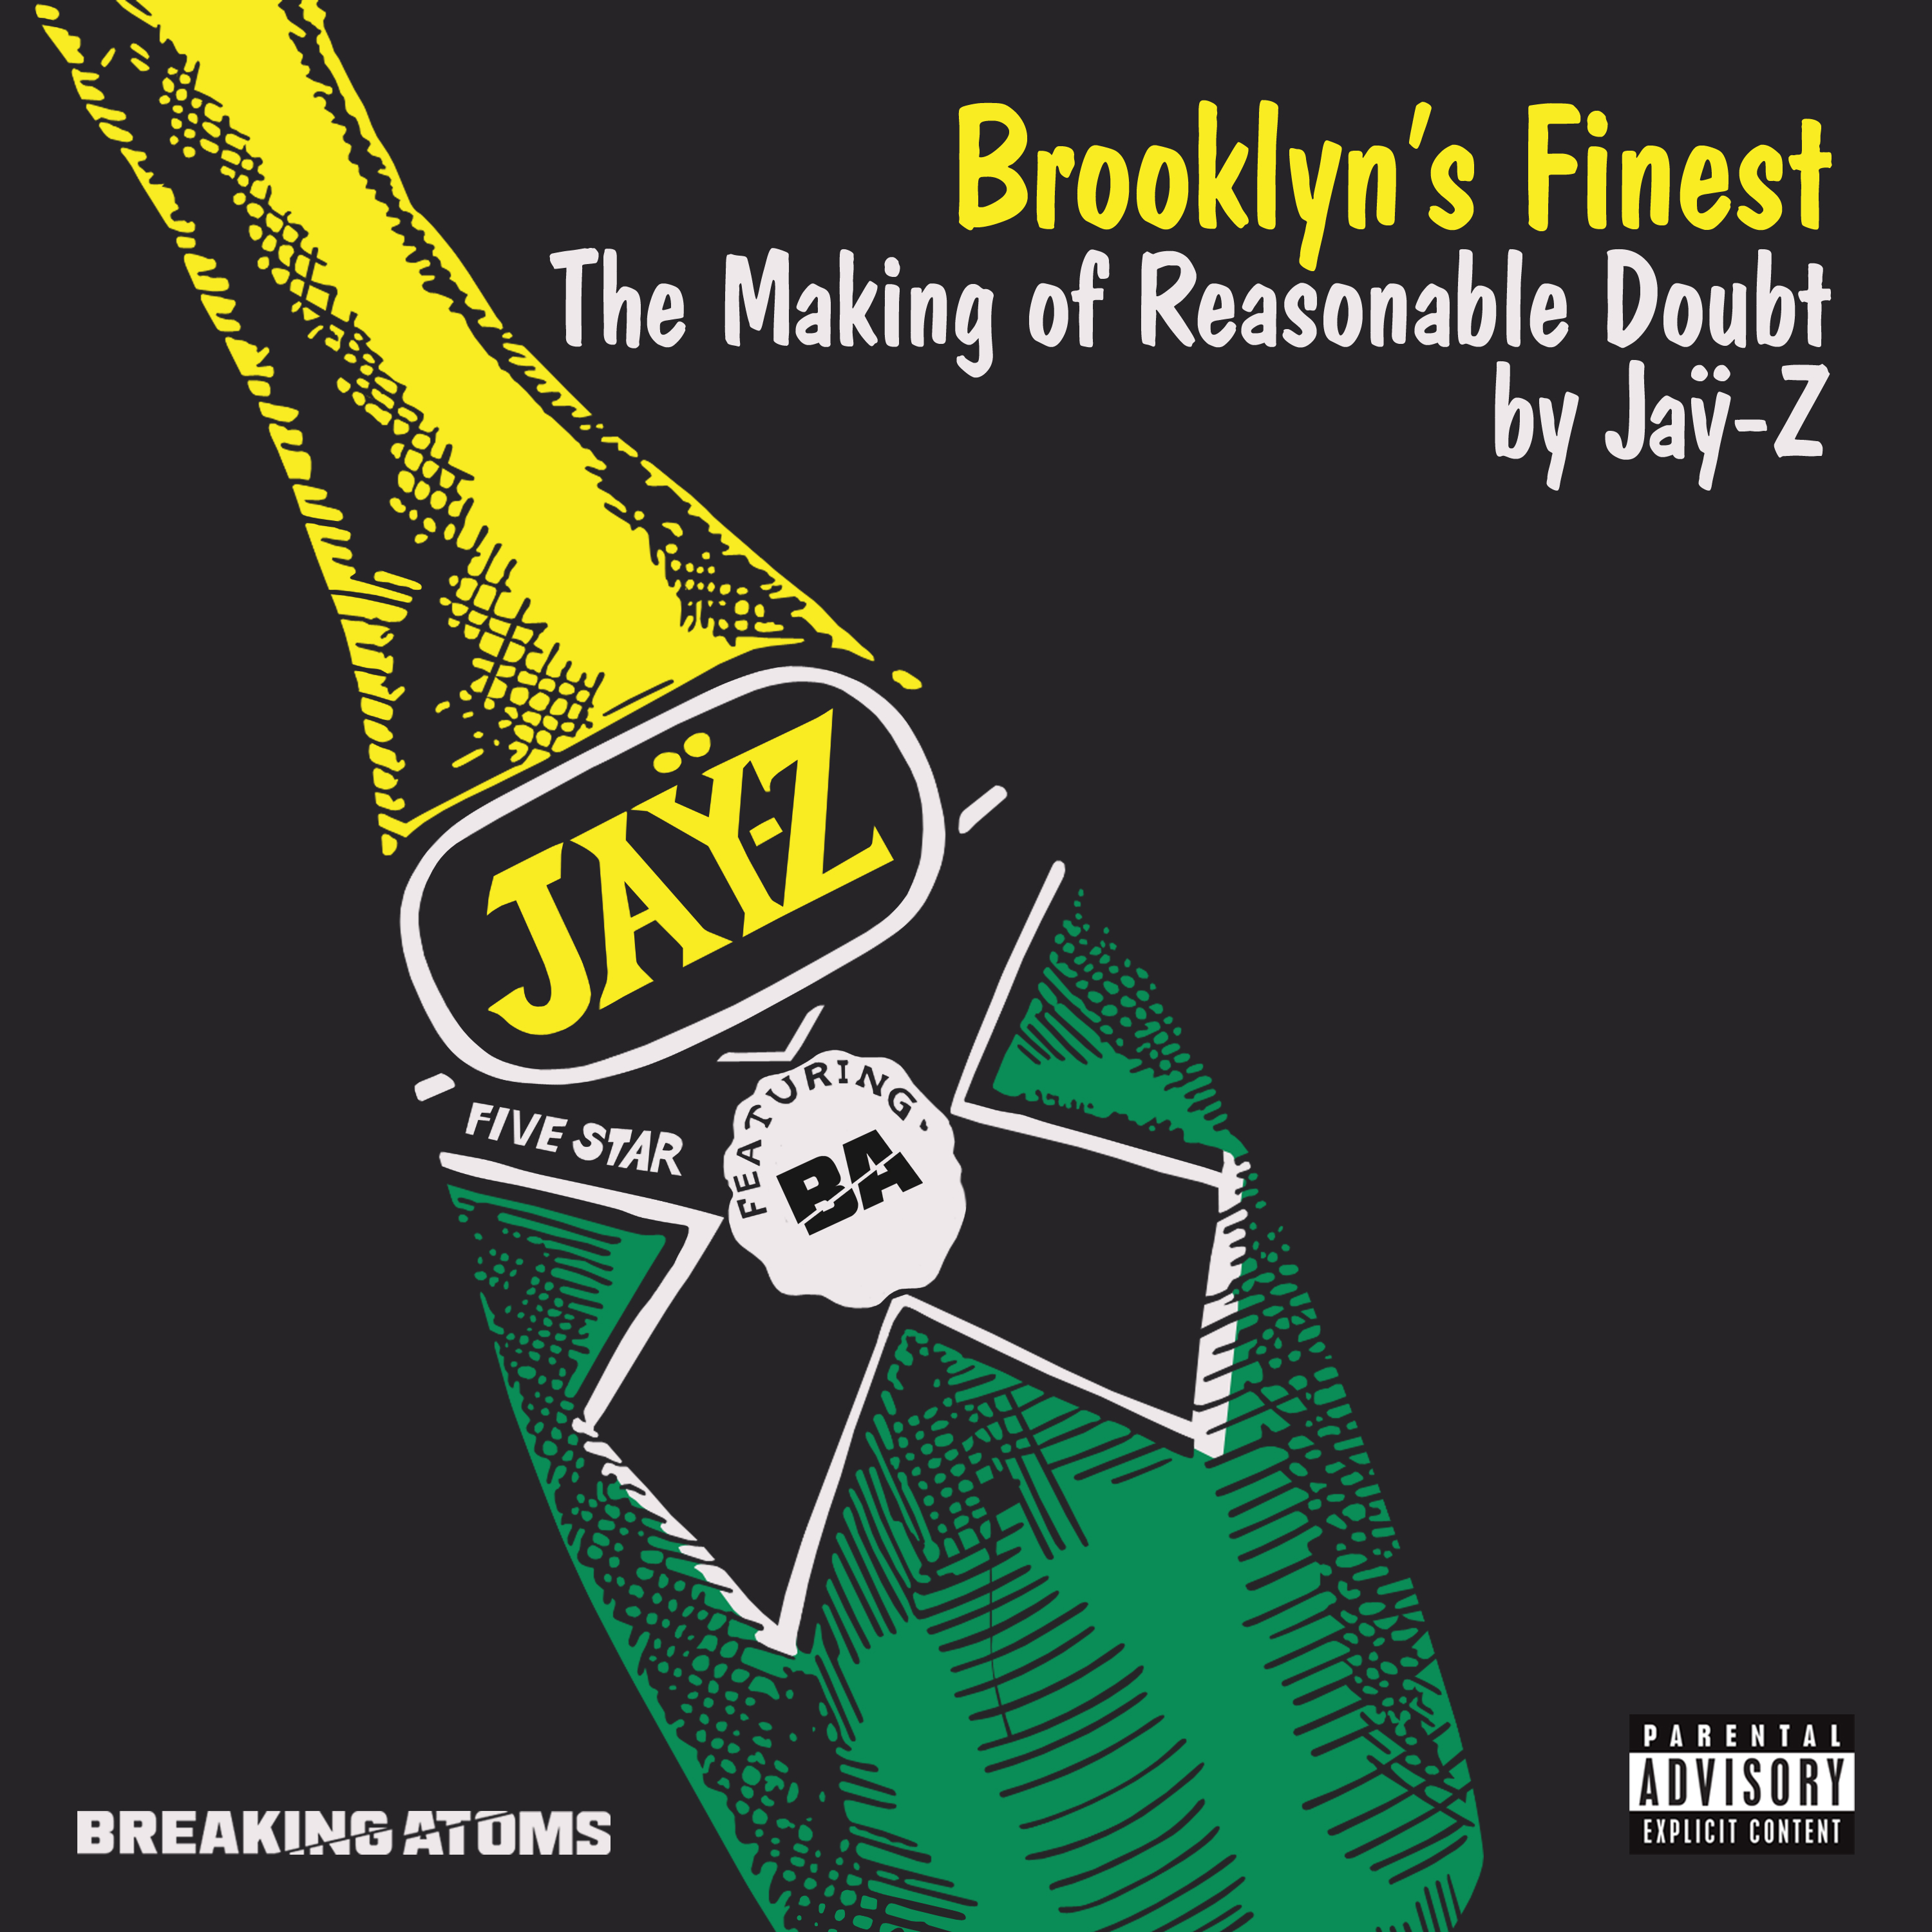 Brooklyn's Finest: The Making of Reasonable Doubt by Jay-Z (Side A)